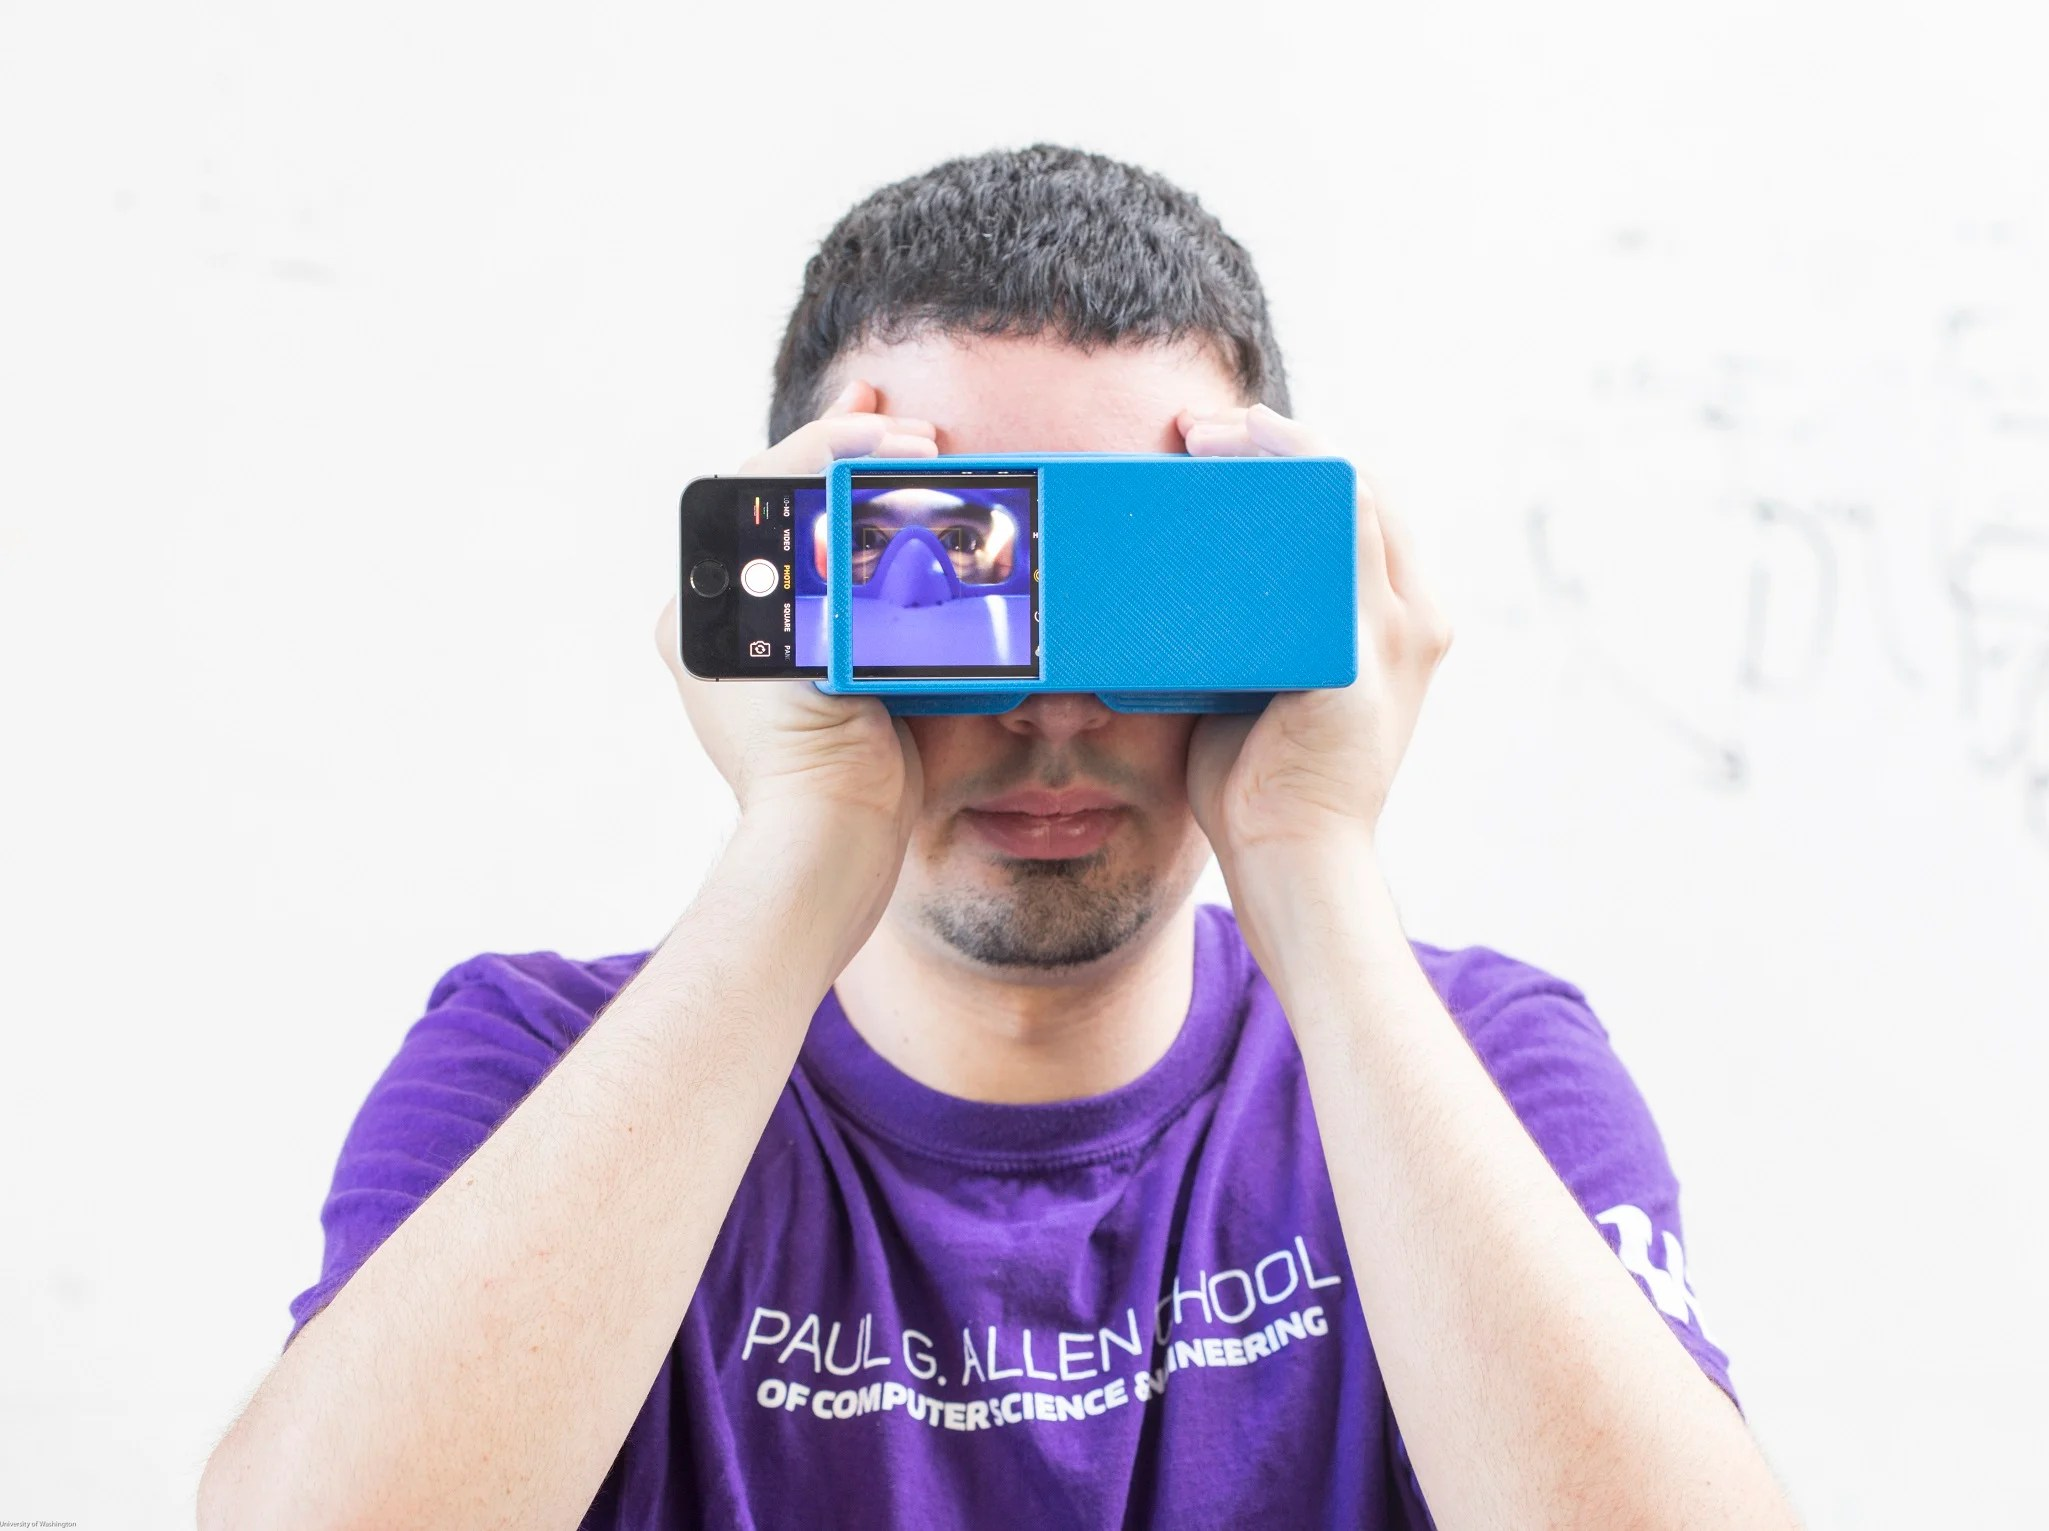 Users, wearing specially designed paper glasses or holding a 3D-printed box, take a selfie using their smartphone